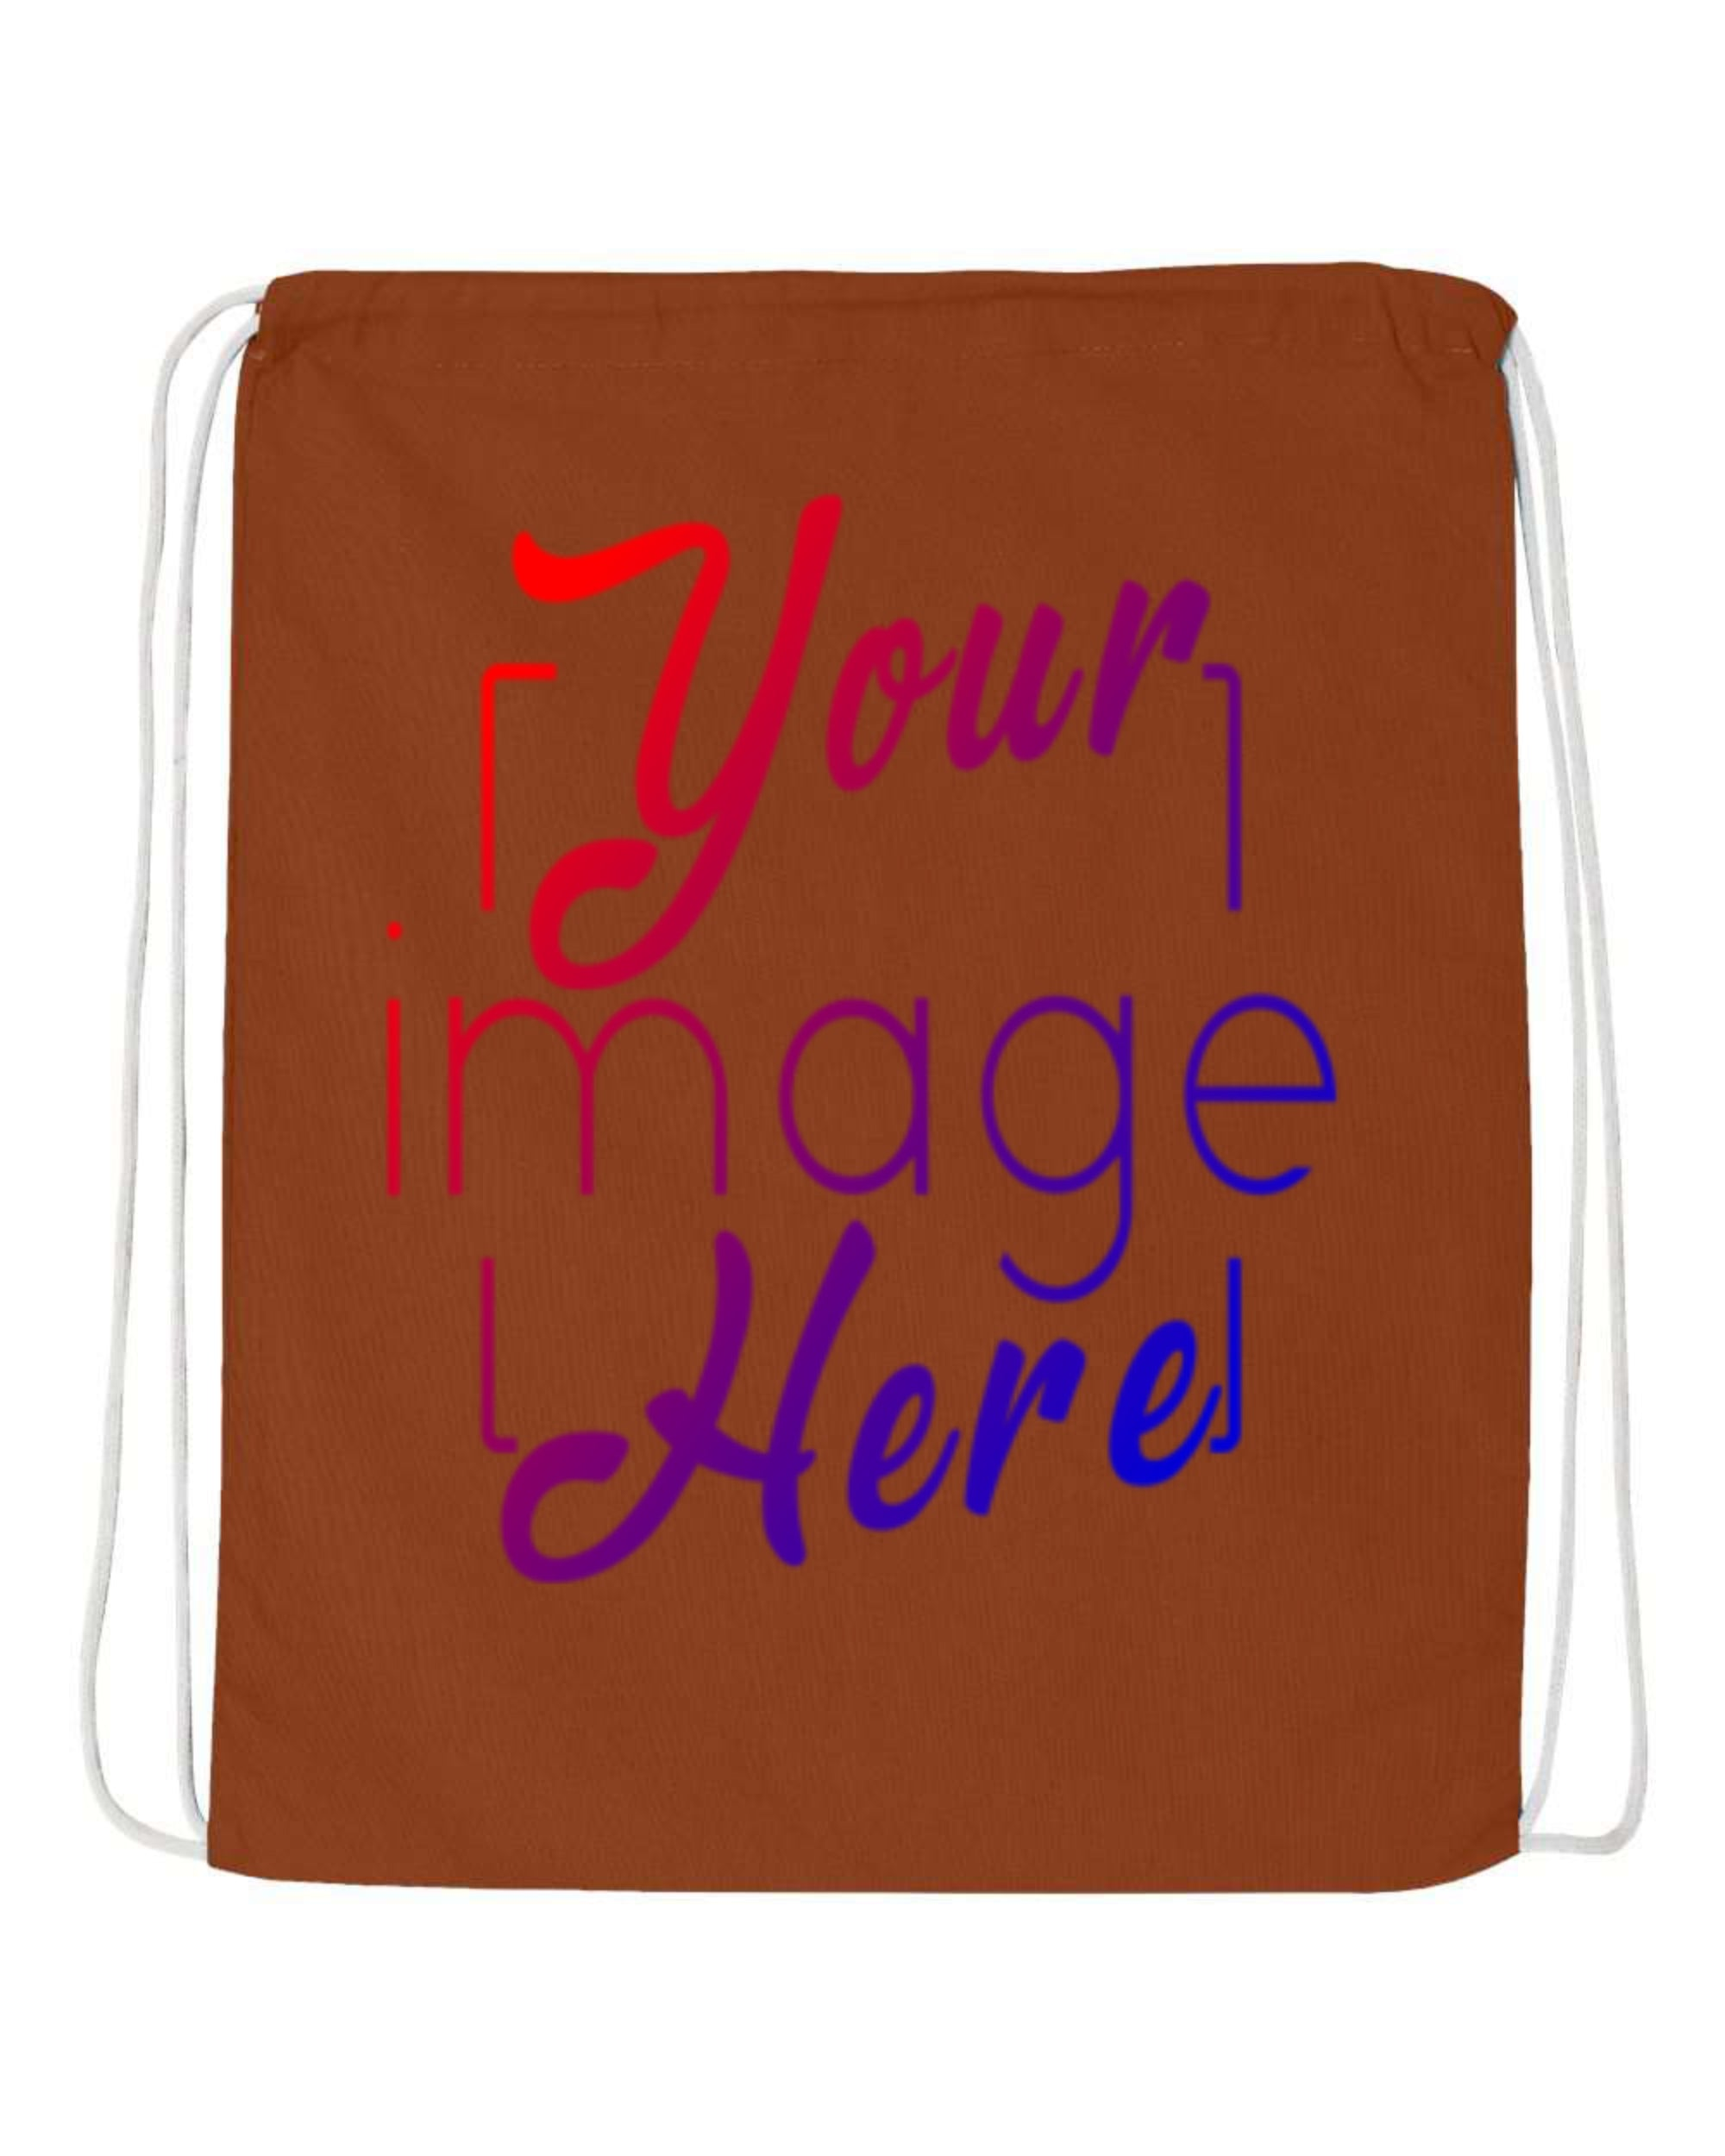 Flat Image of Drawstring Backpack for Custom Printing